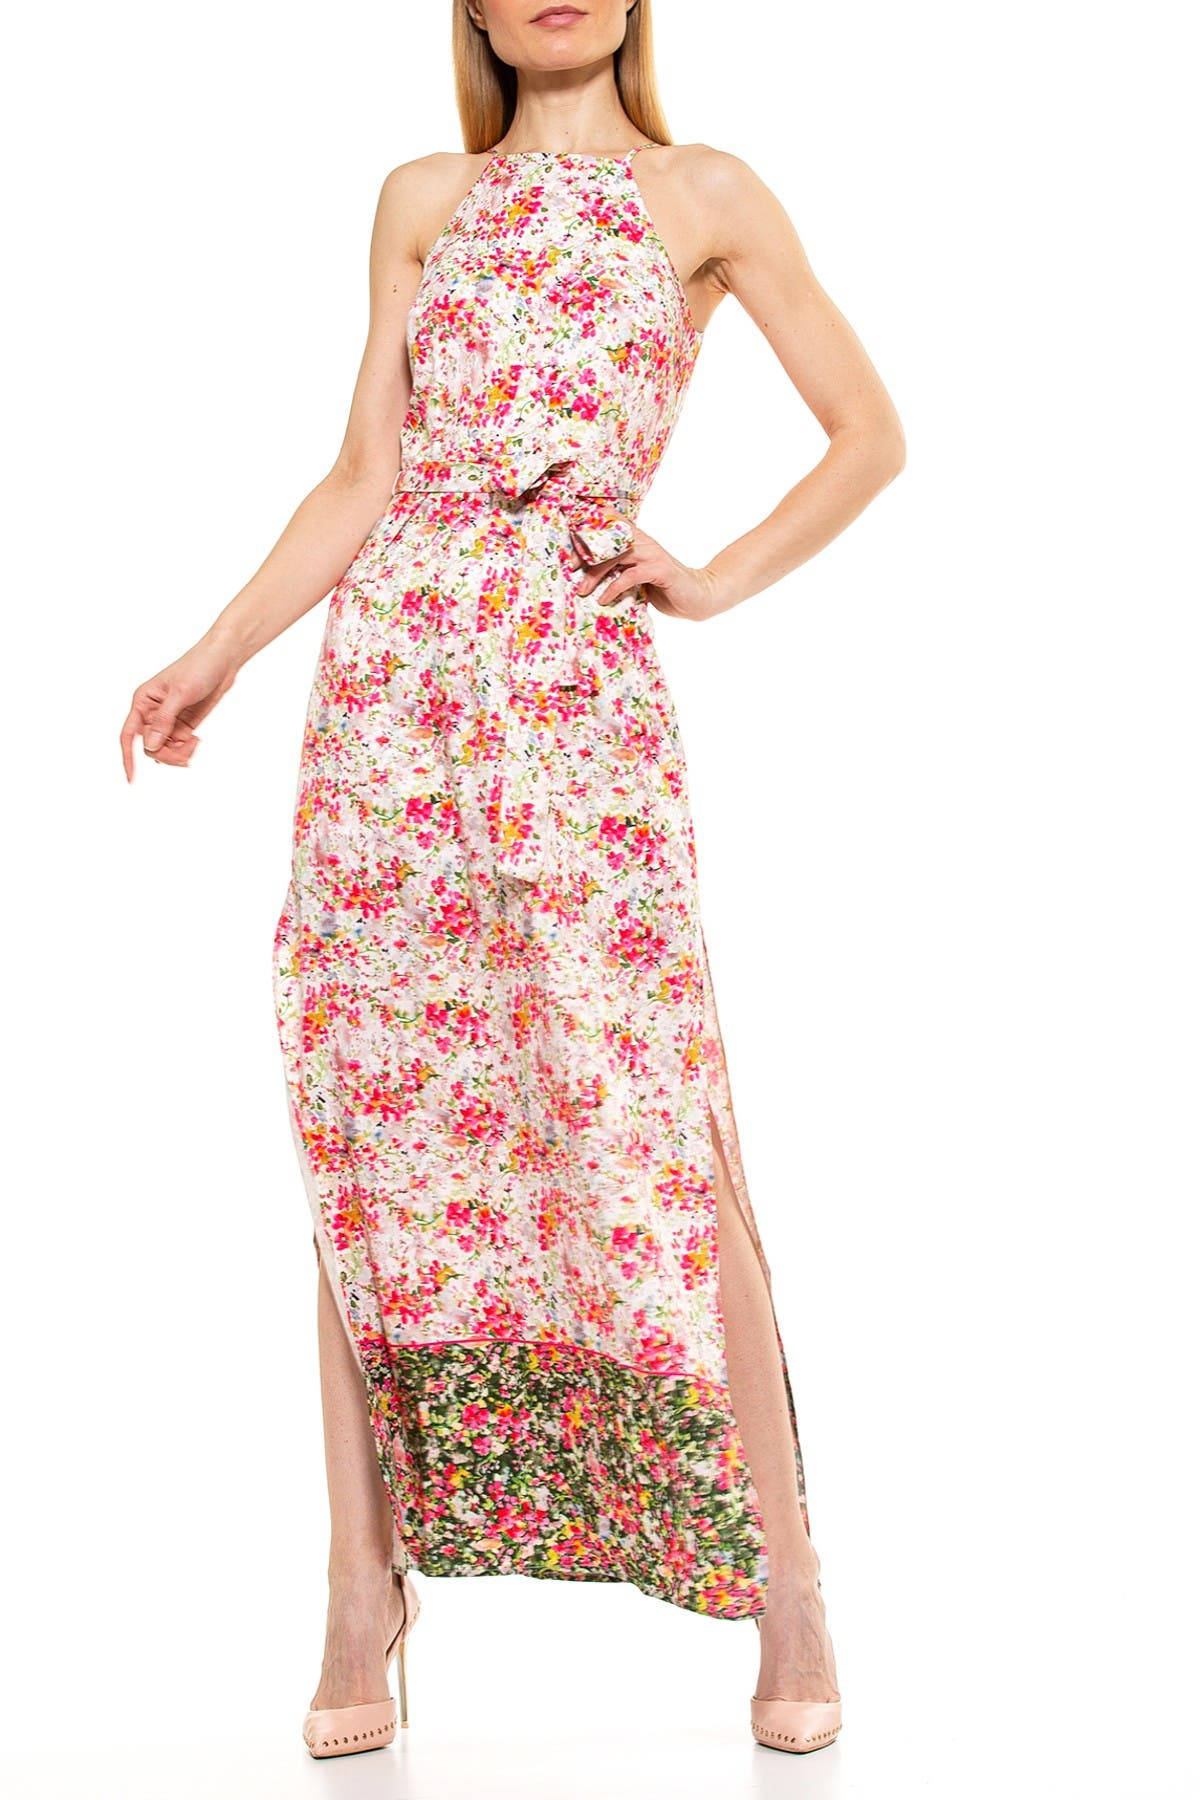 Image of Alexia Admor Monica Floral Print Belted Maxi Dress